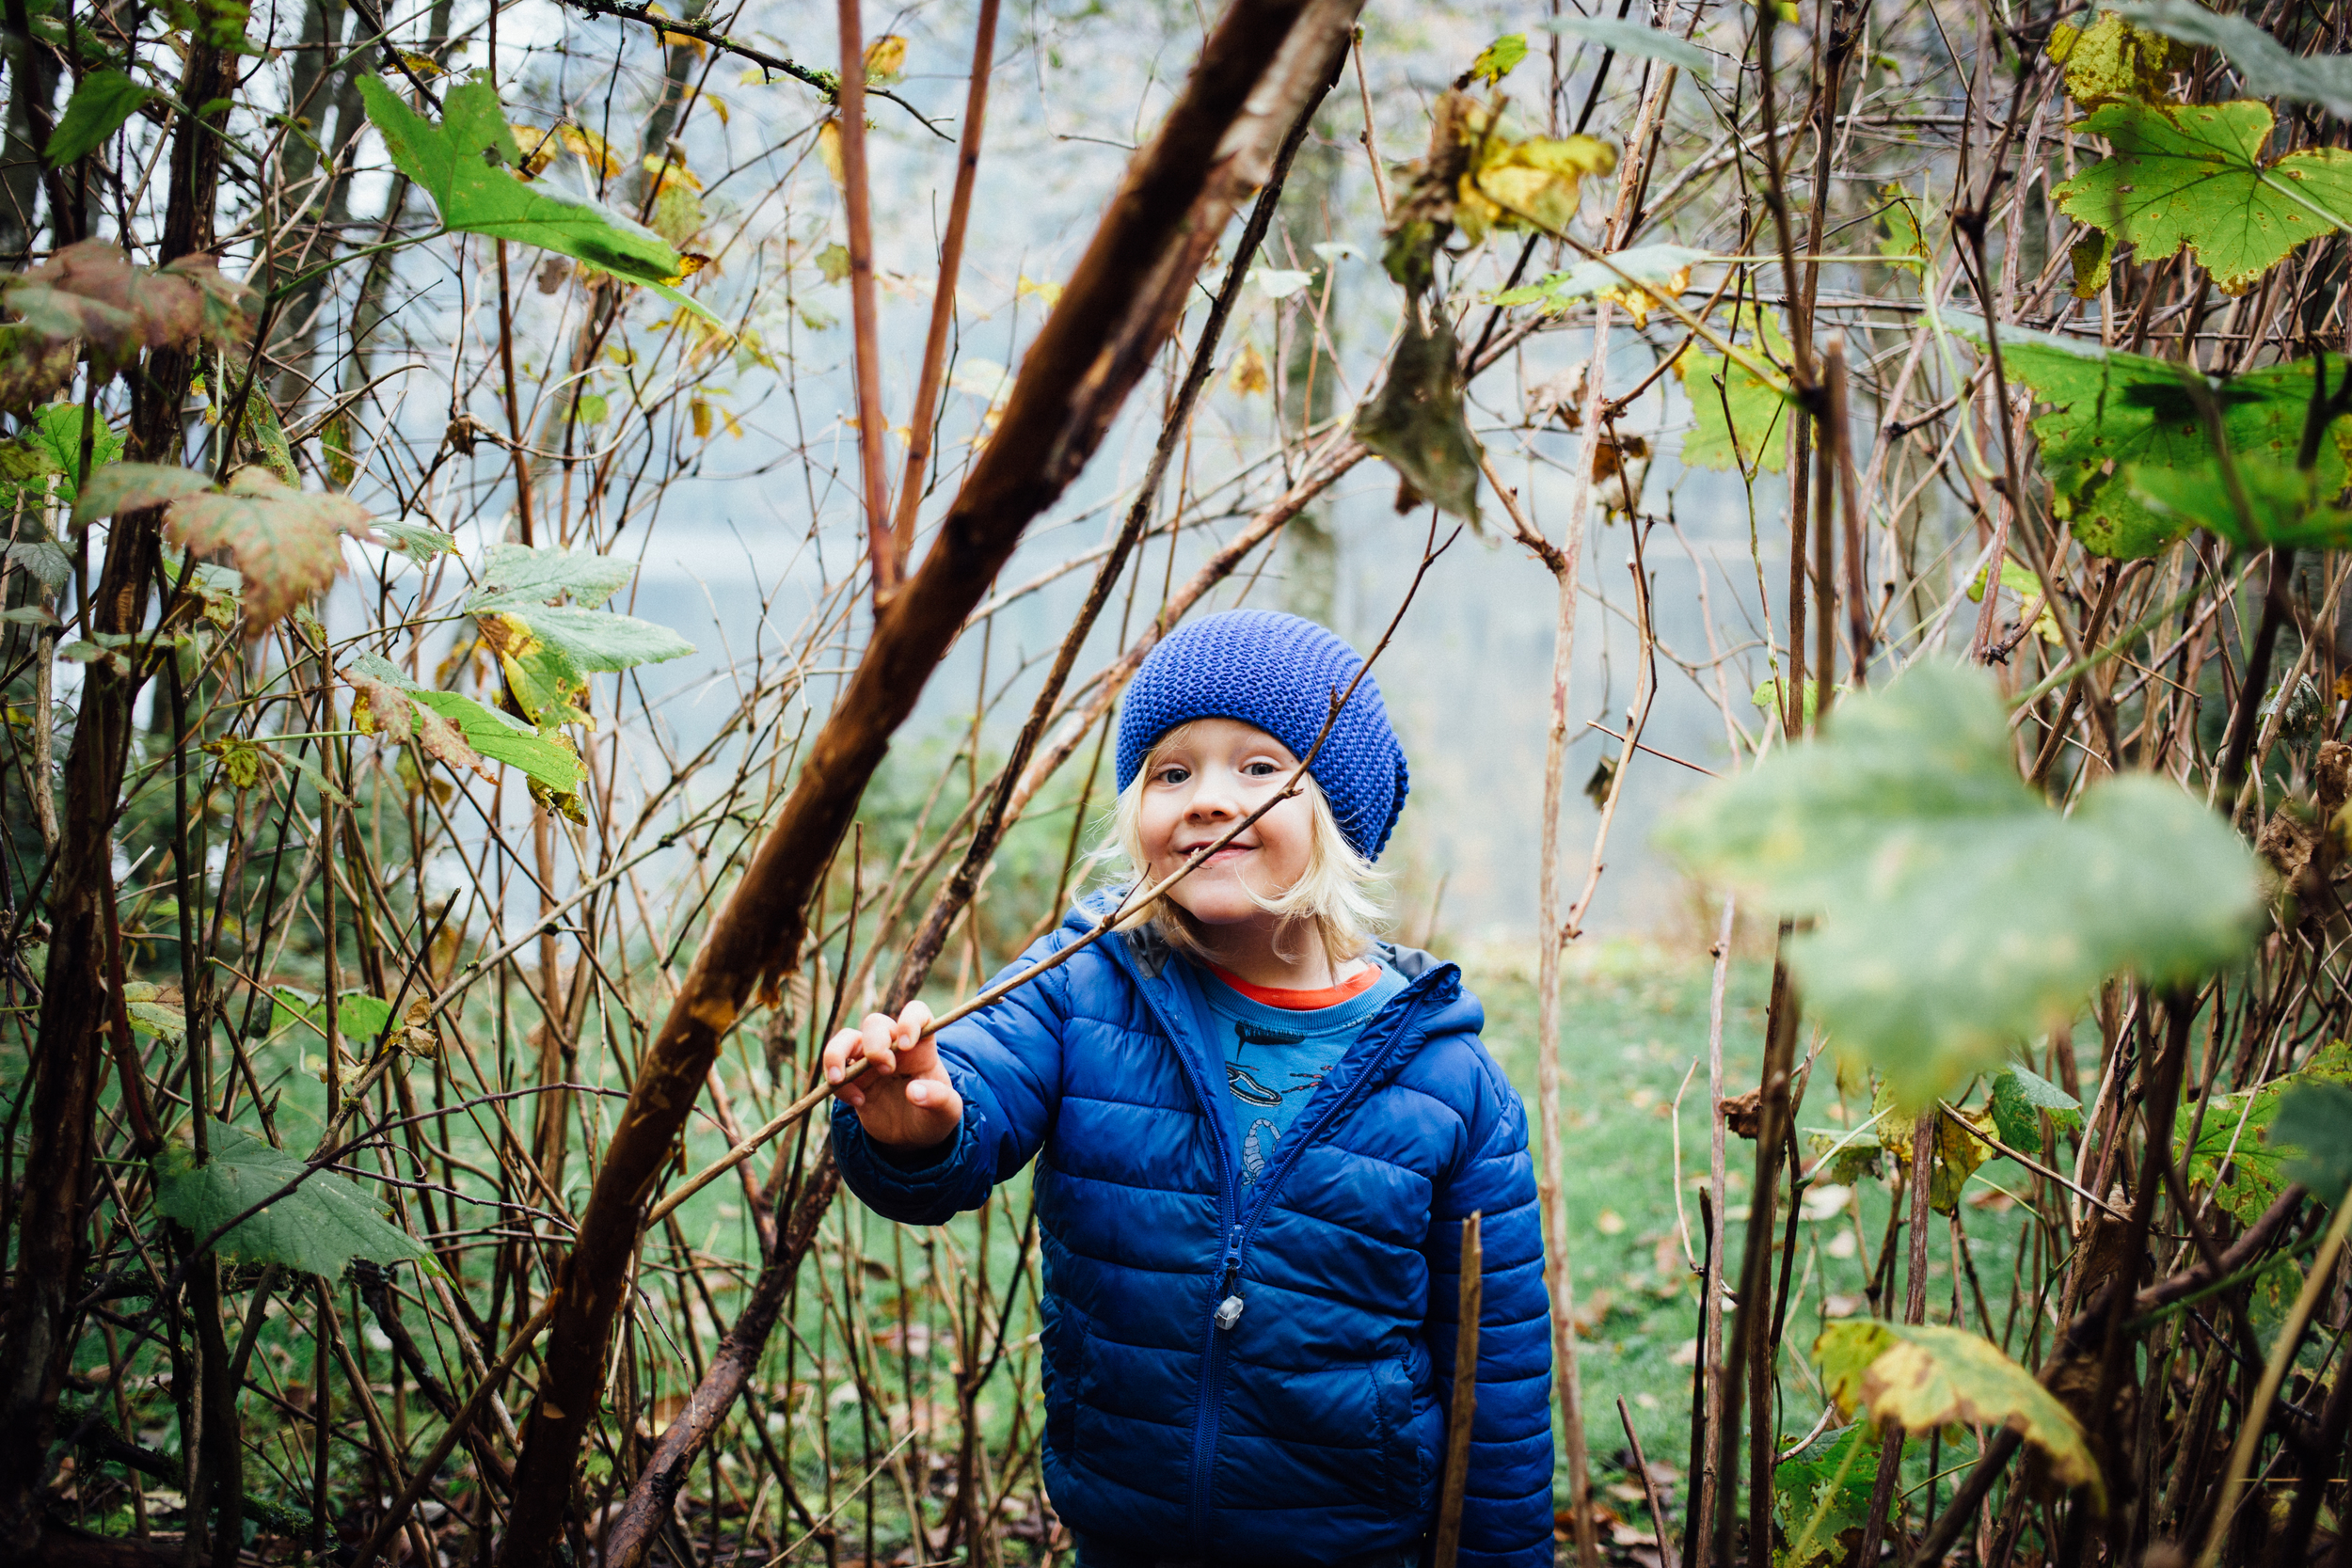 dogwoodphotography_photographer_vancouver_family_fallcamping-16-2.jpg